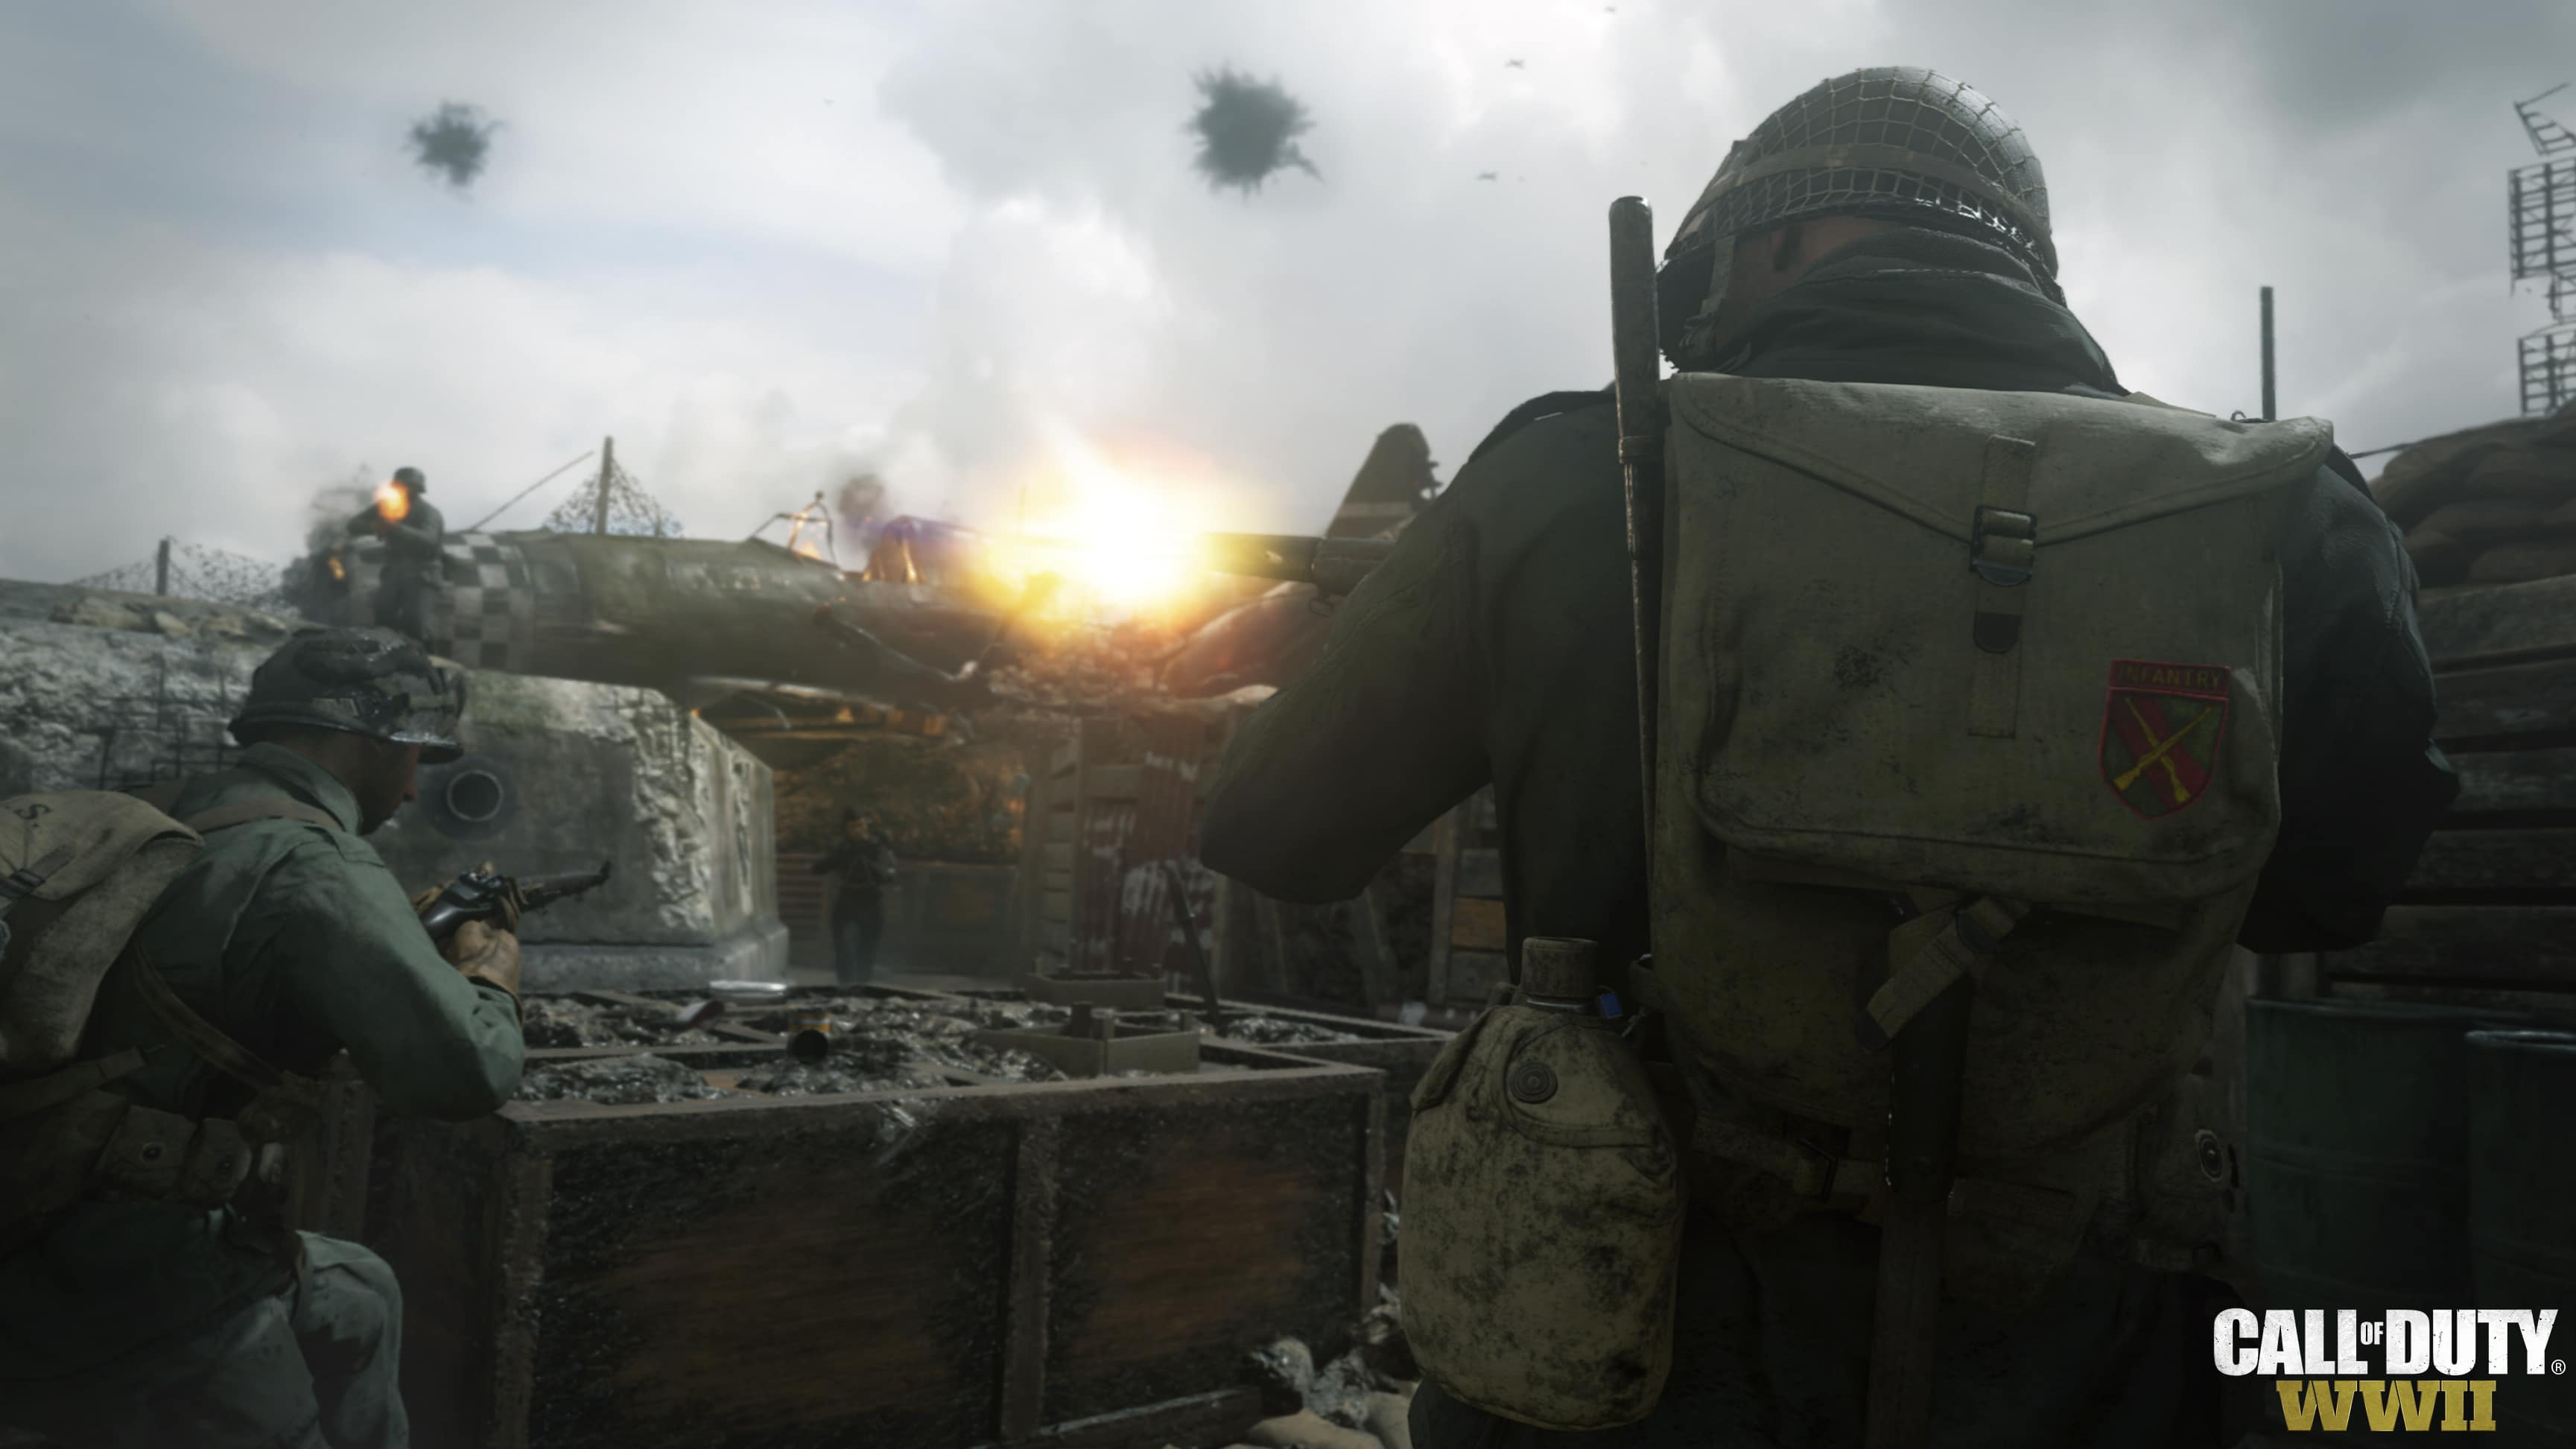 Call Of Duty Ww2 Live Wallpaper The Galleries Of Hd Wallpaper